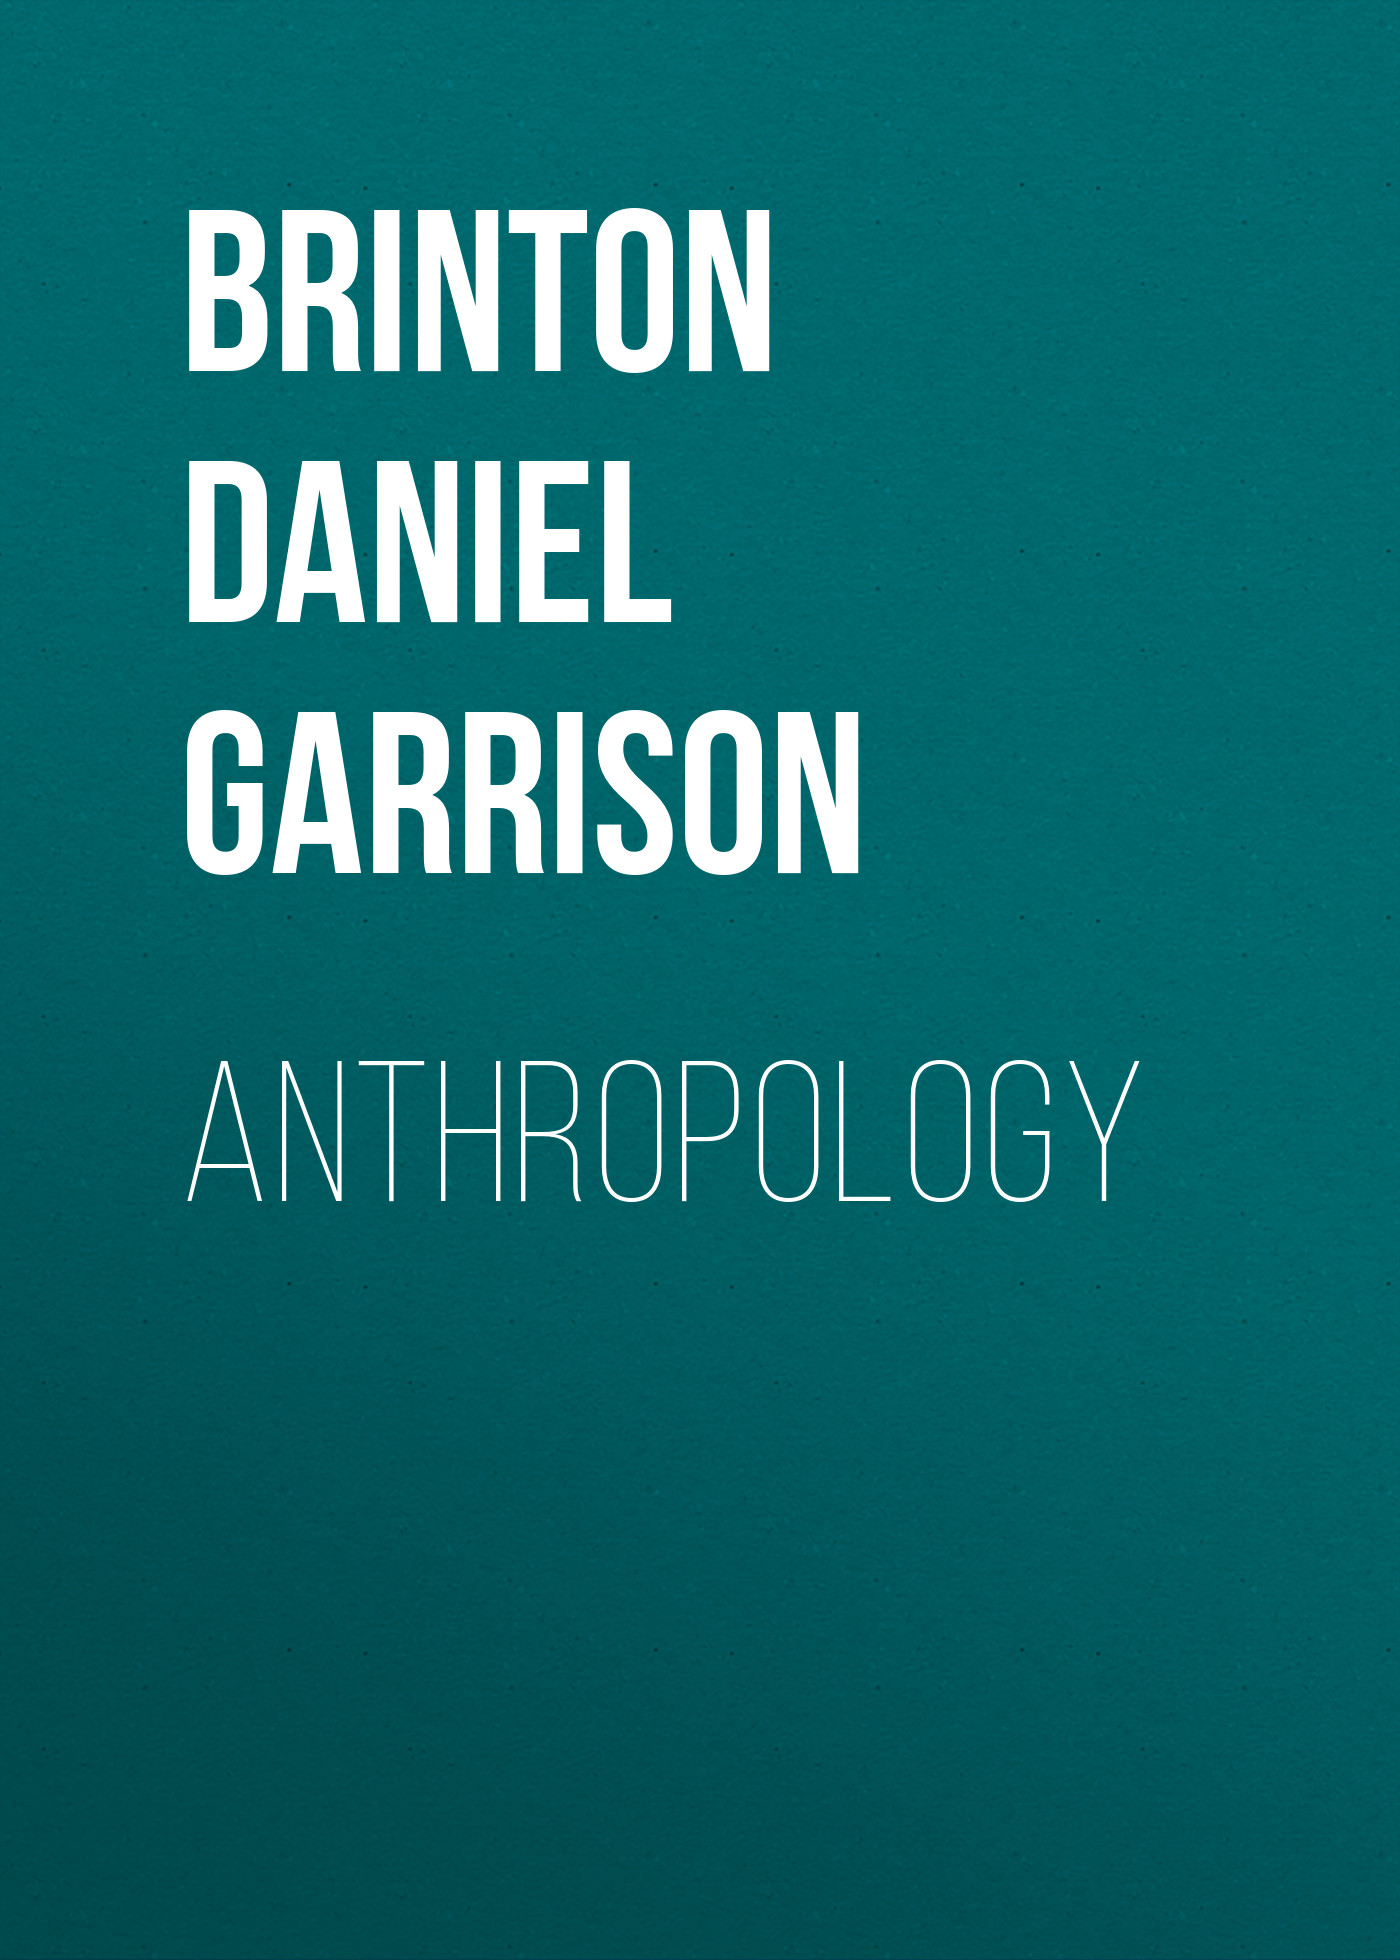 Brinton Daniel Garrison Anthropology